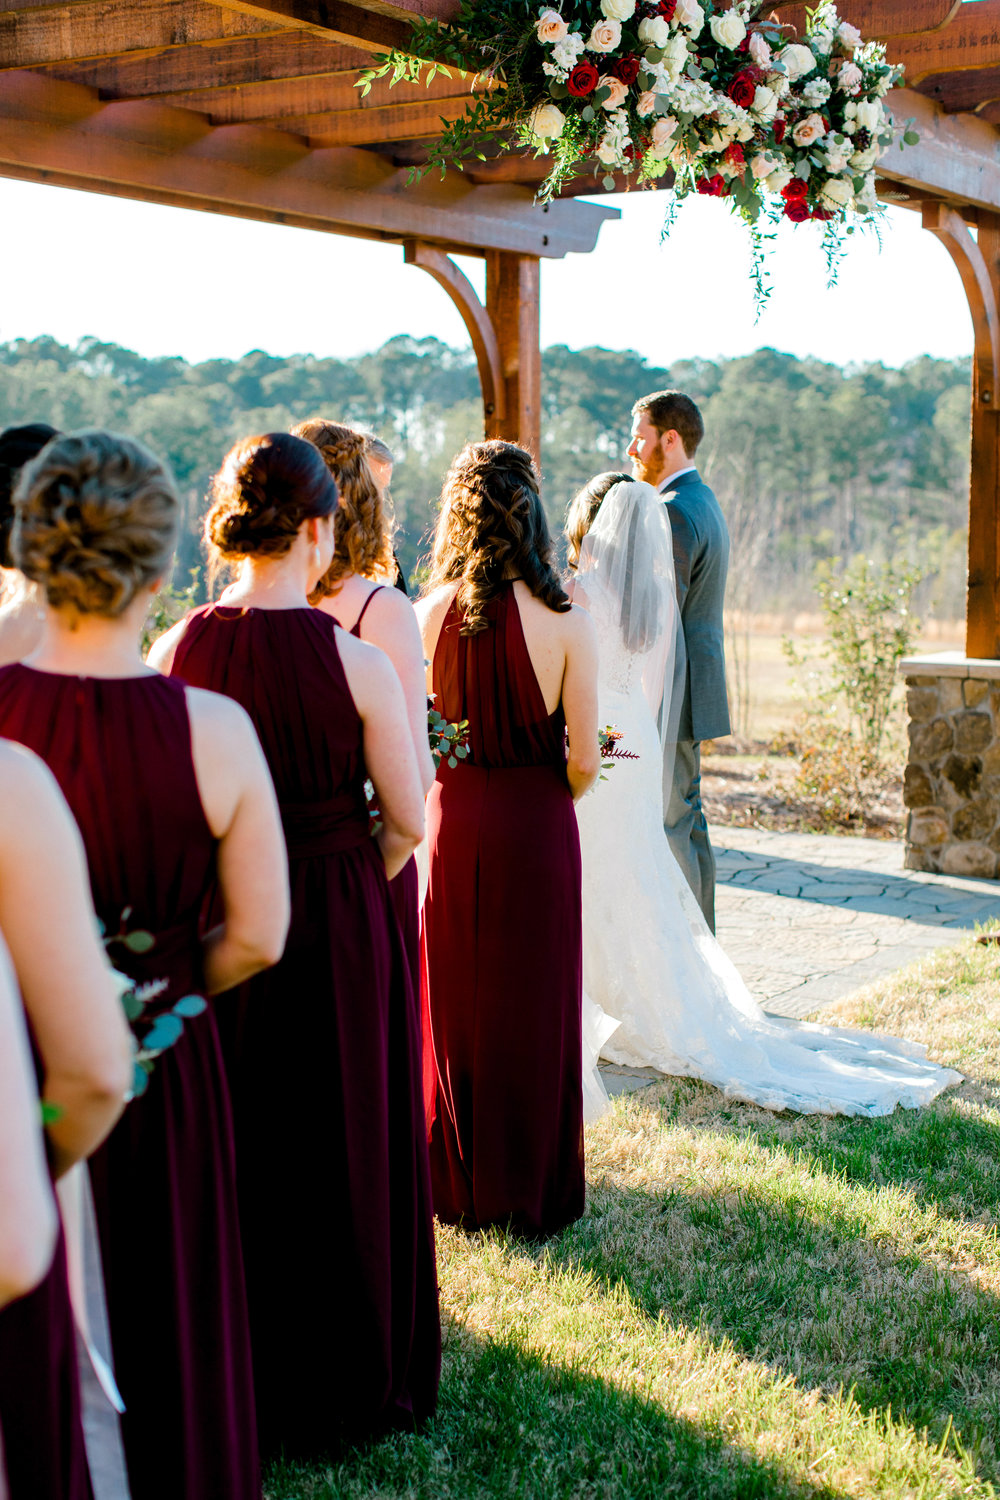 Ceremony_MelissaJonathanWedding-86.jpg